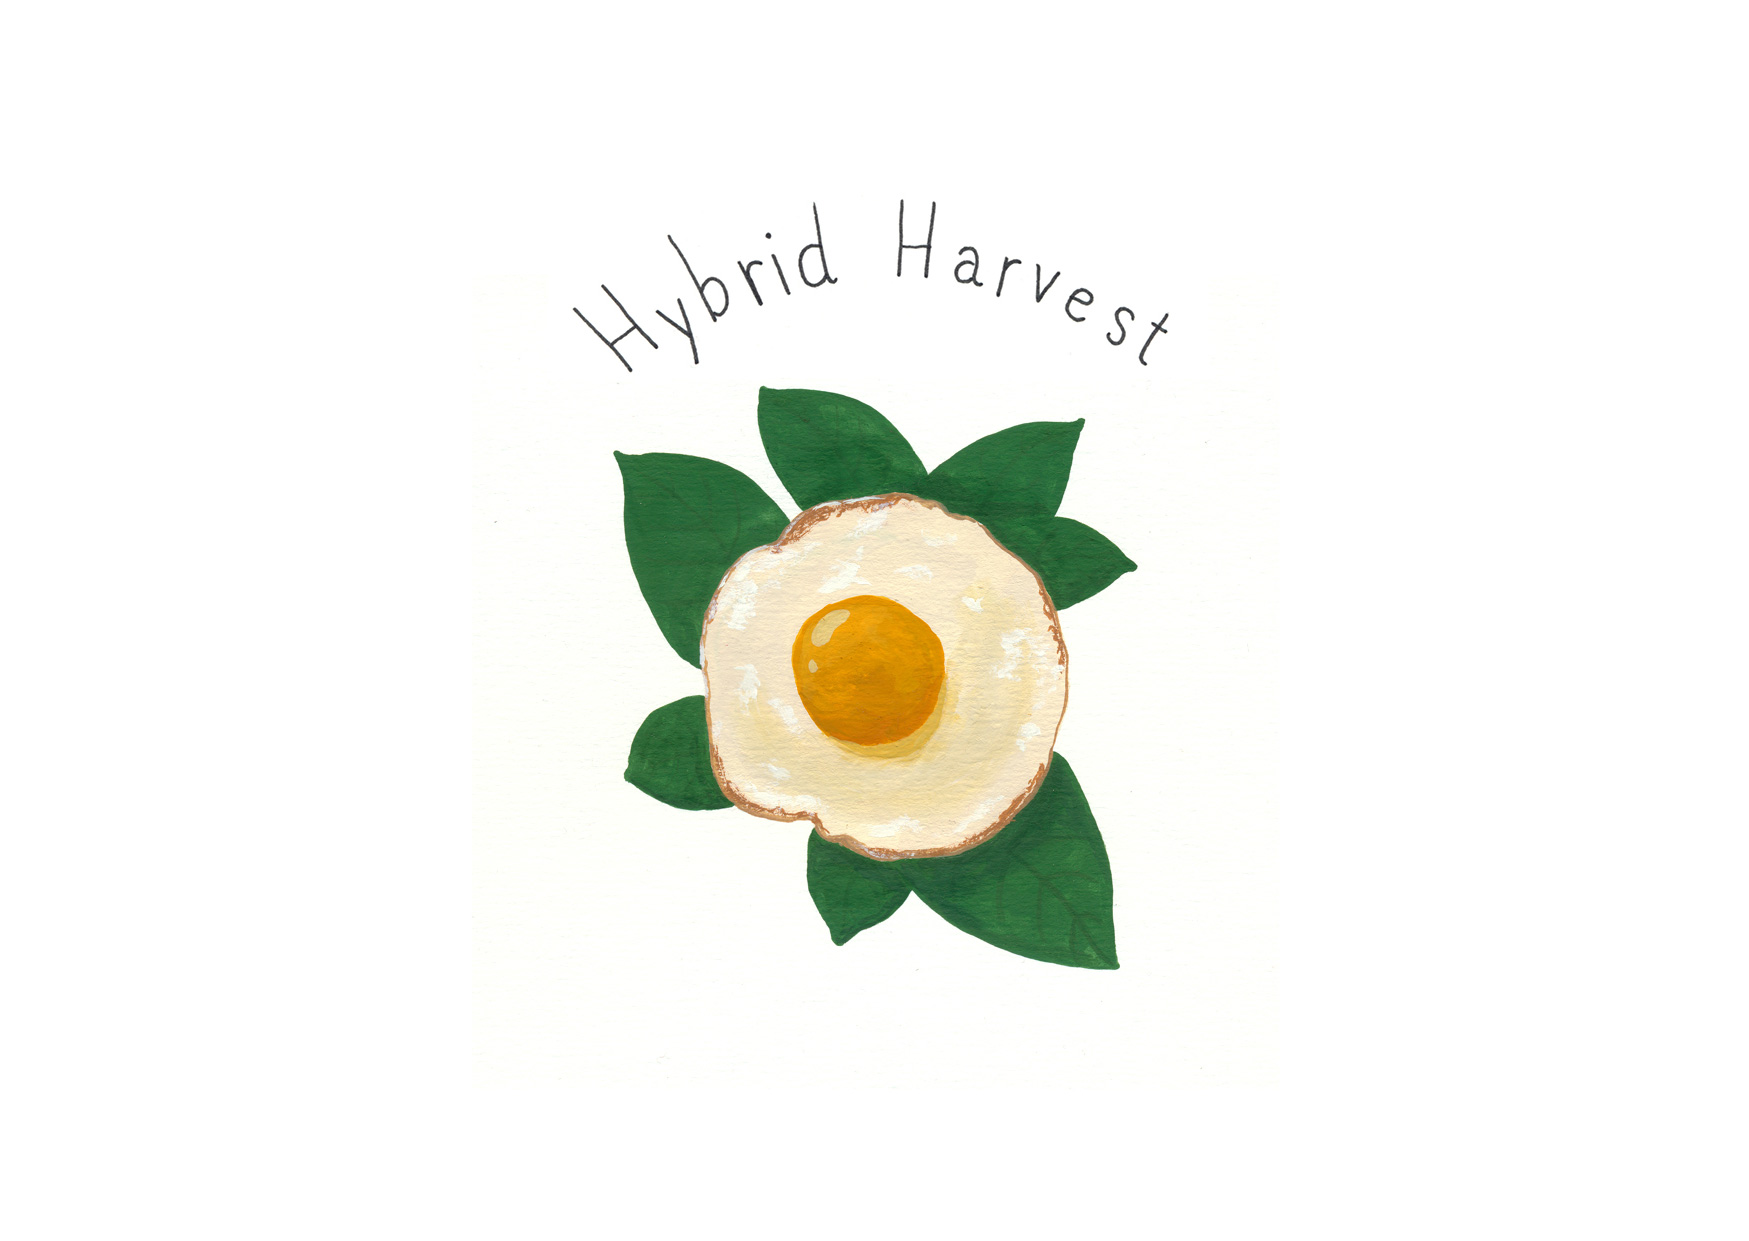 Hybrid Harvest Zine. A collection of fantastical plants you might spot in your dreams.